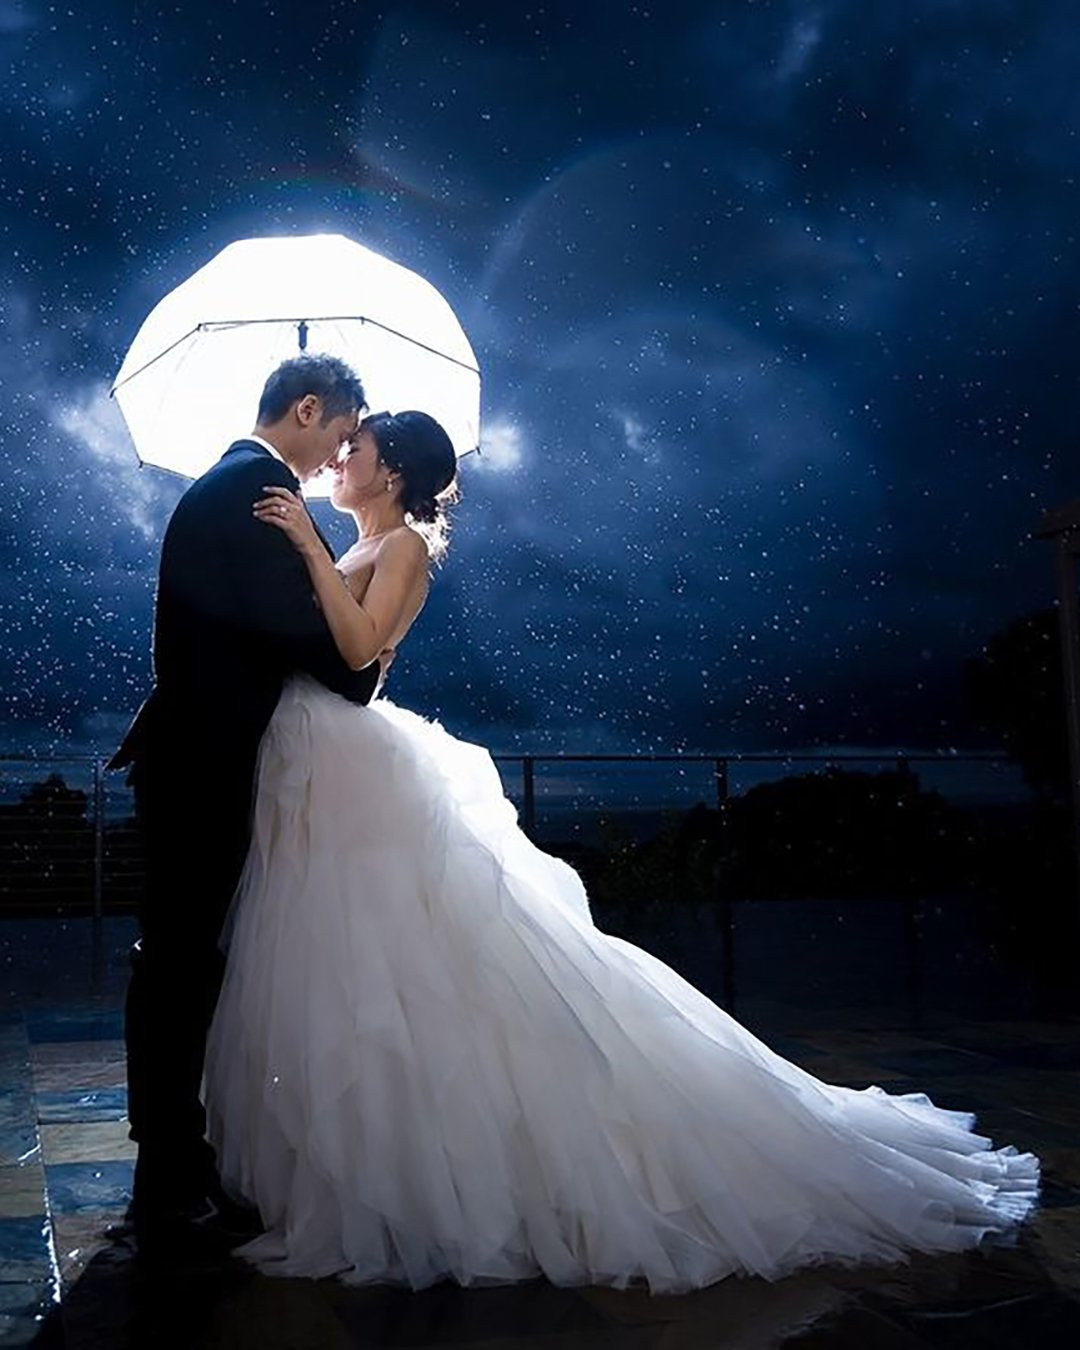 cute wedding photos rain in the night white umblella linandjirsa